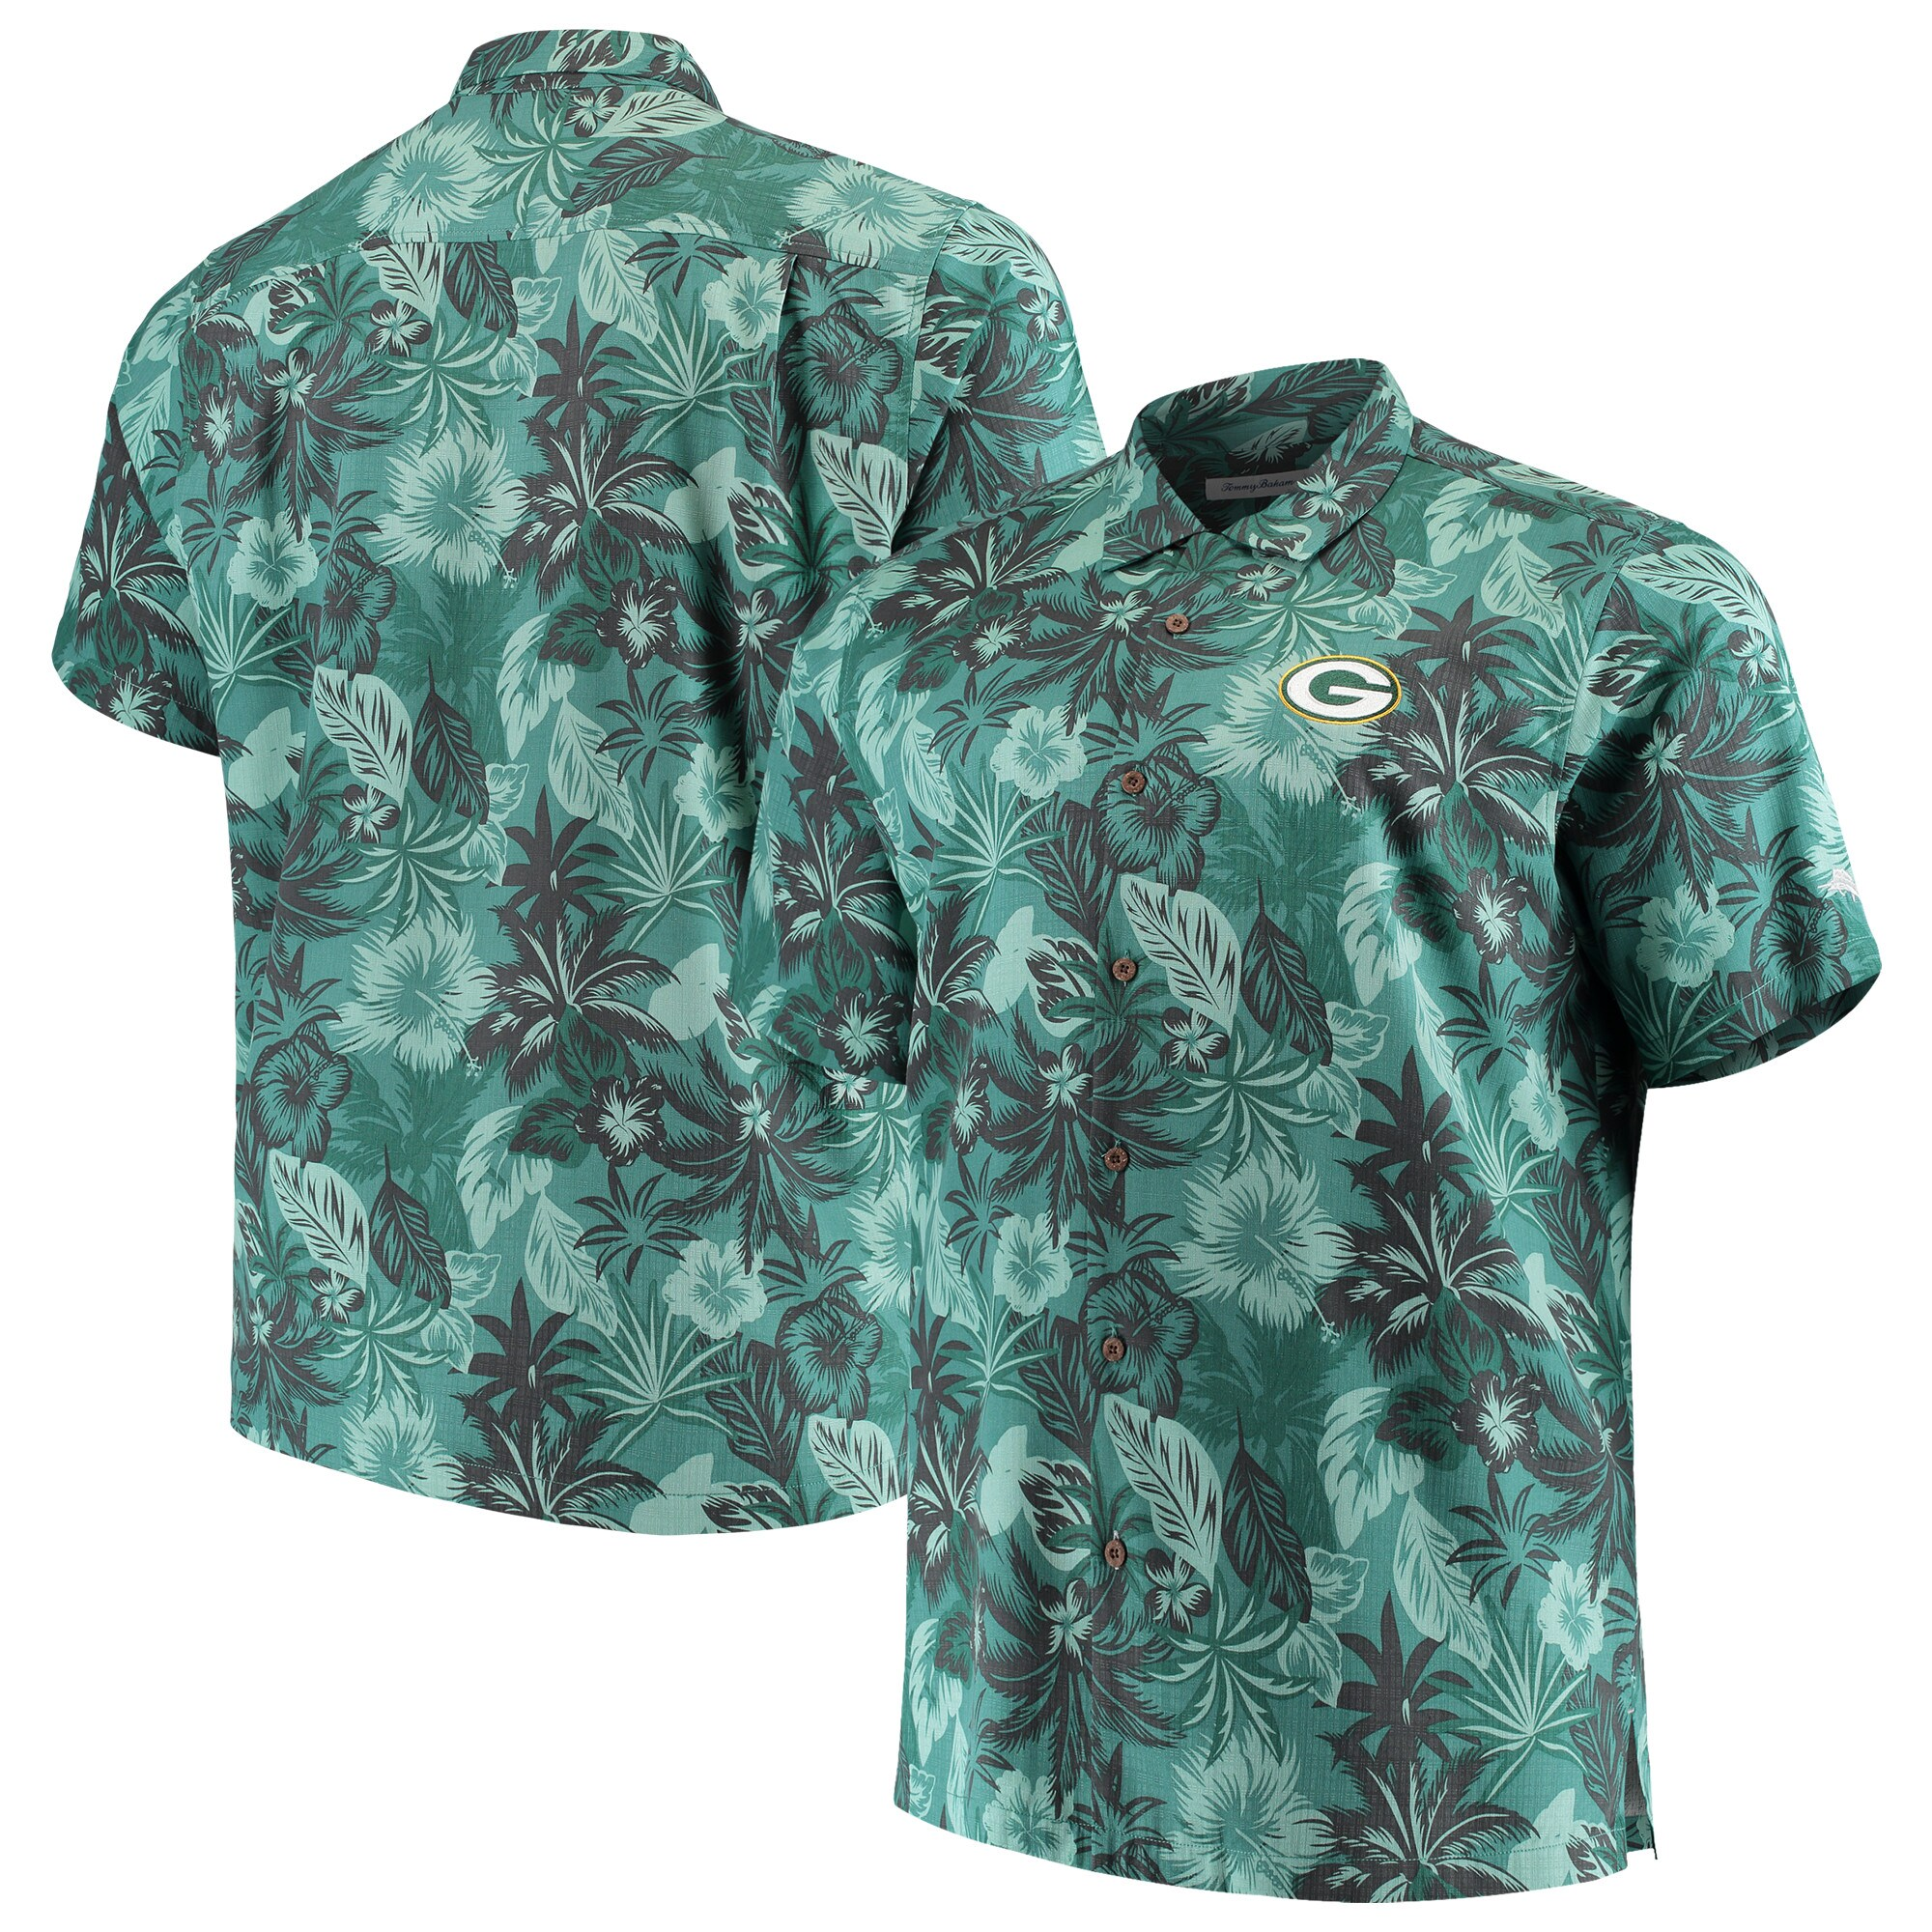 Green Bay Packers Tommy Bahama Big & Tall Fuego Floral Button-Up Shirt - Green